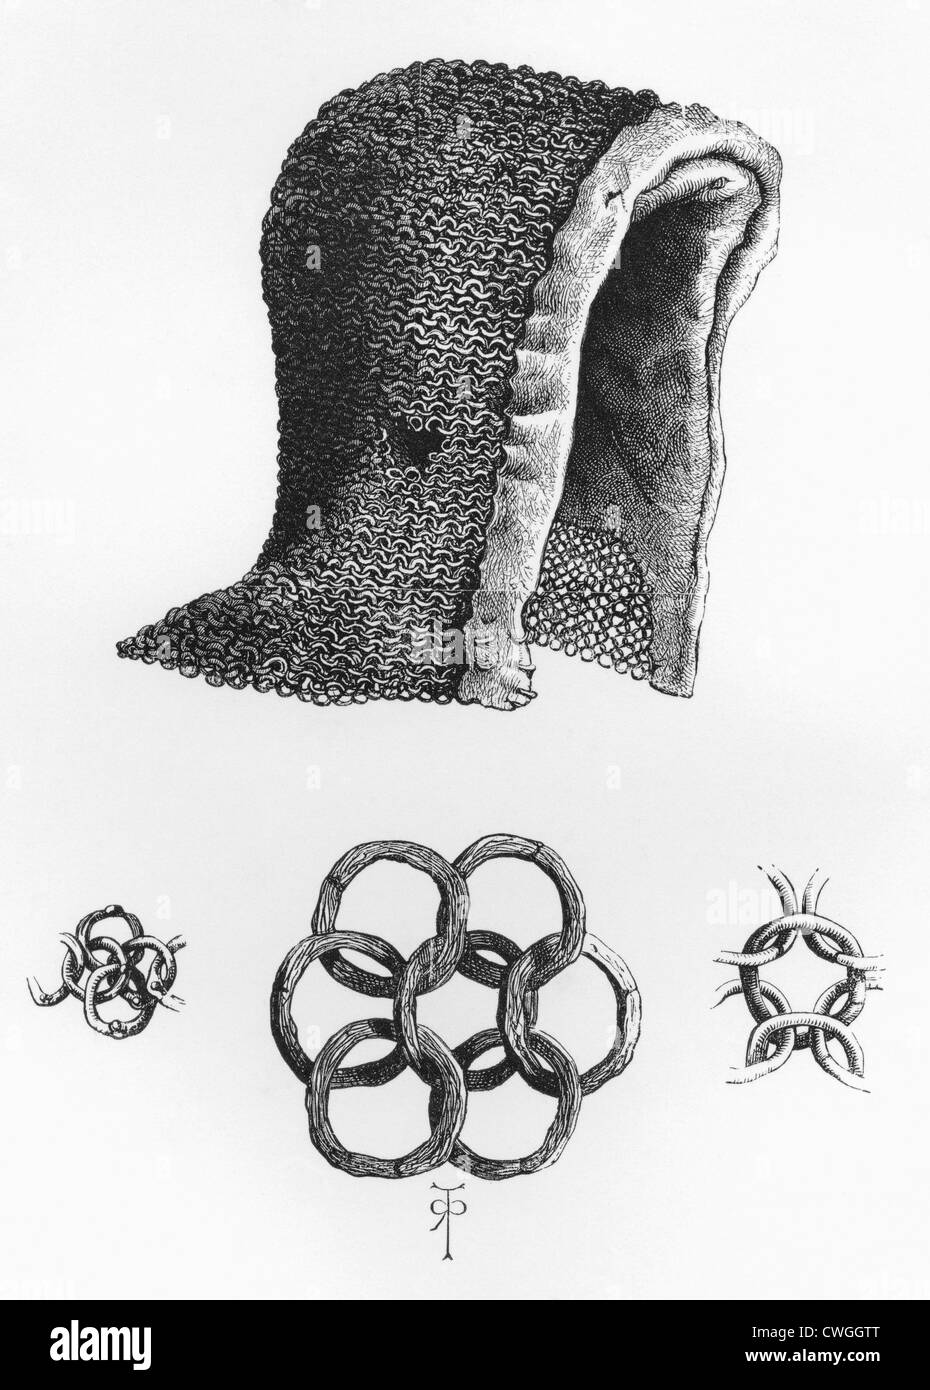 Chain mail hood and example of interlocking chain mail, c. A.D. 1120. - Stock Image